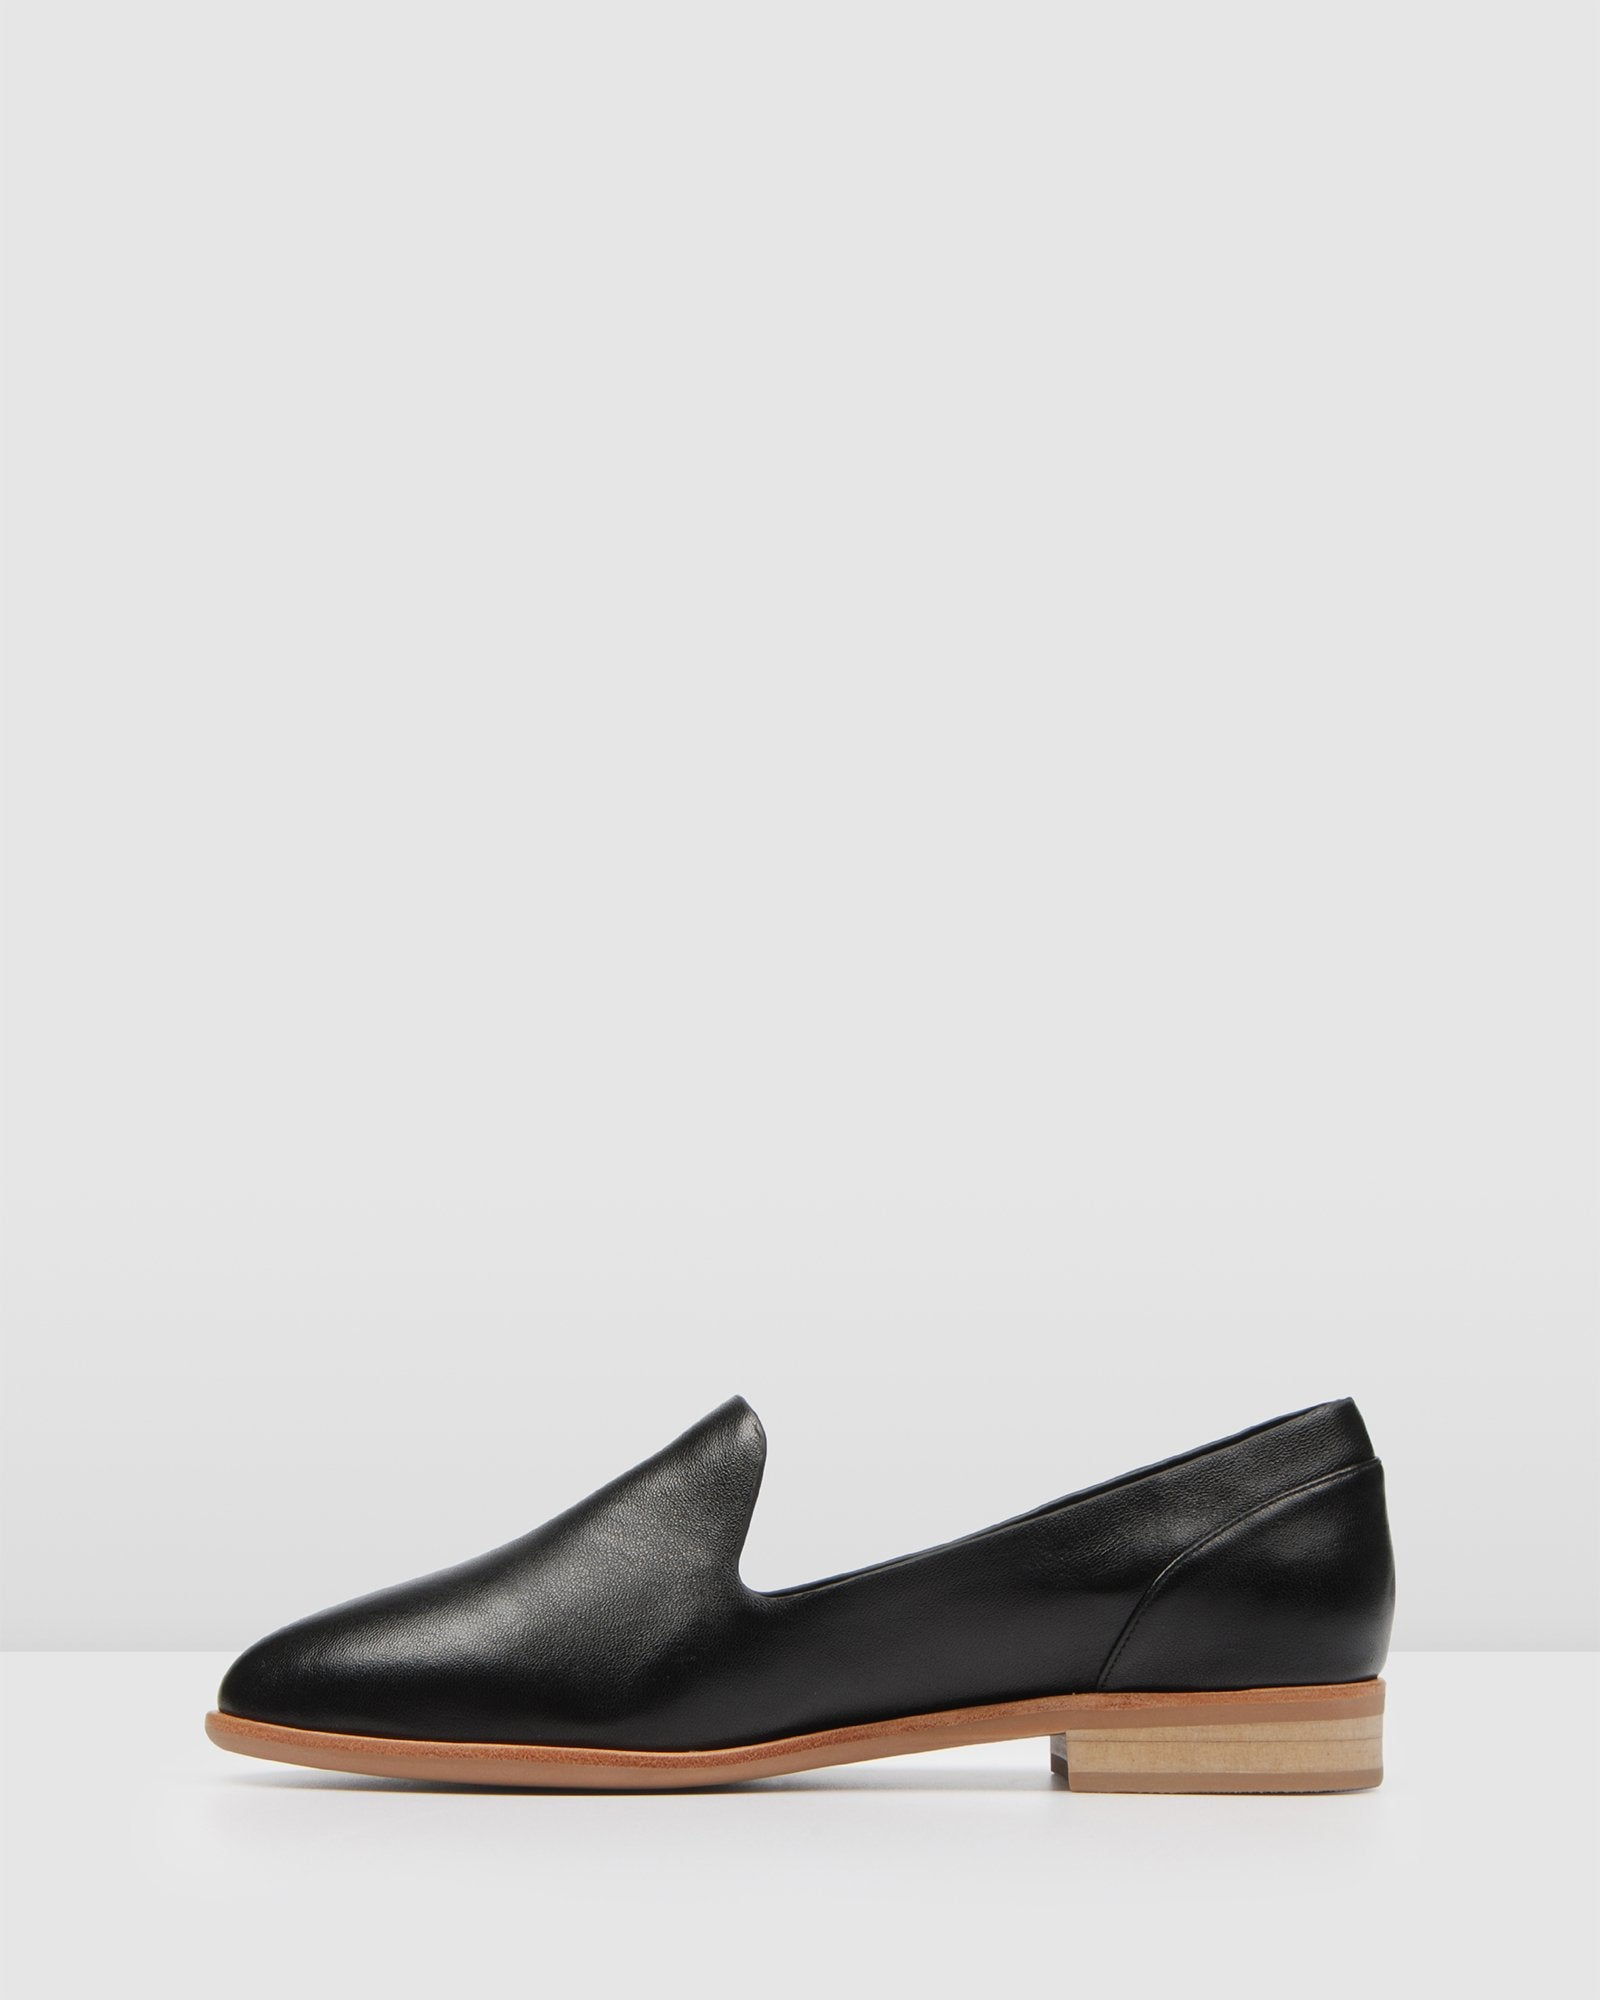 VICKY CASUAL FLATS BLACK LEATHER